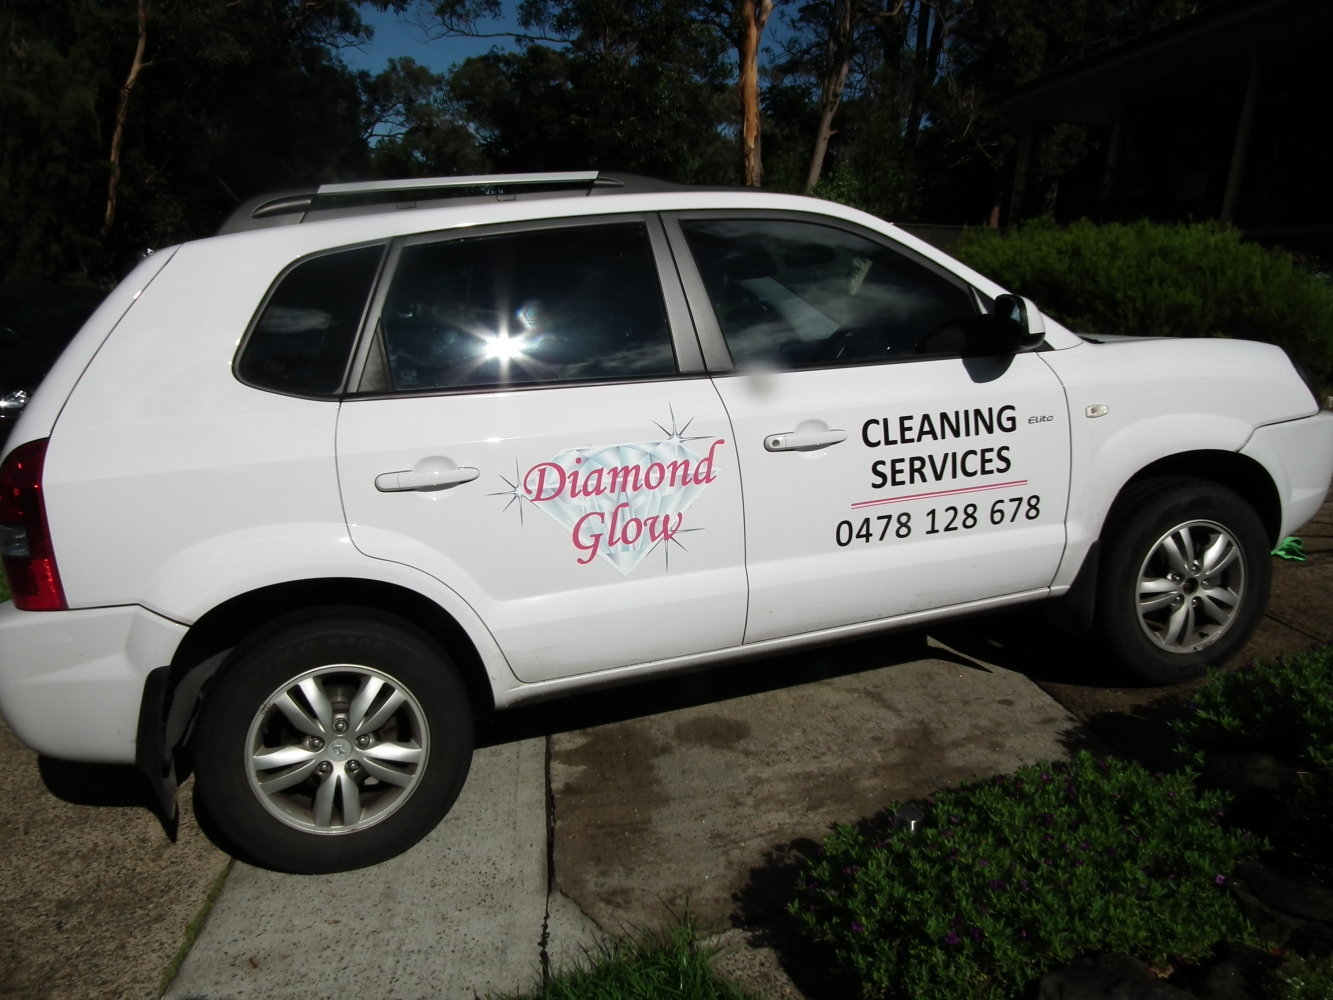 Diamond Glow Cleaning Services